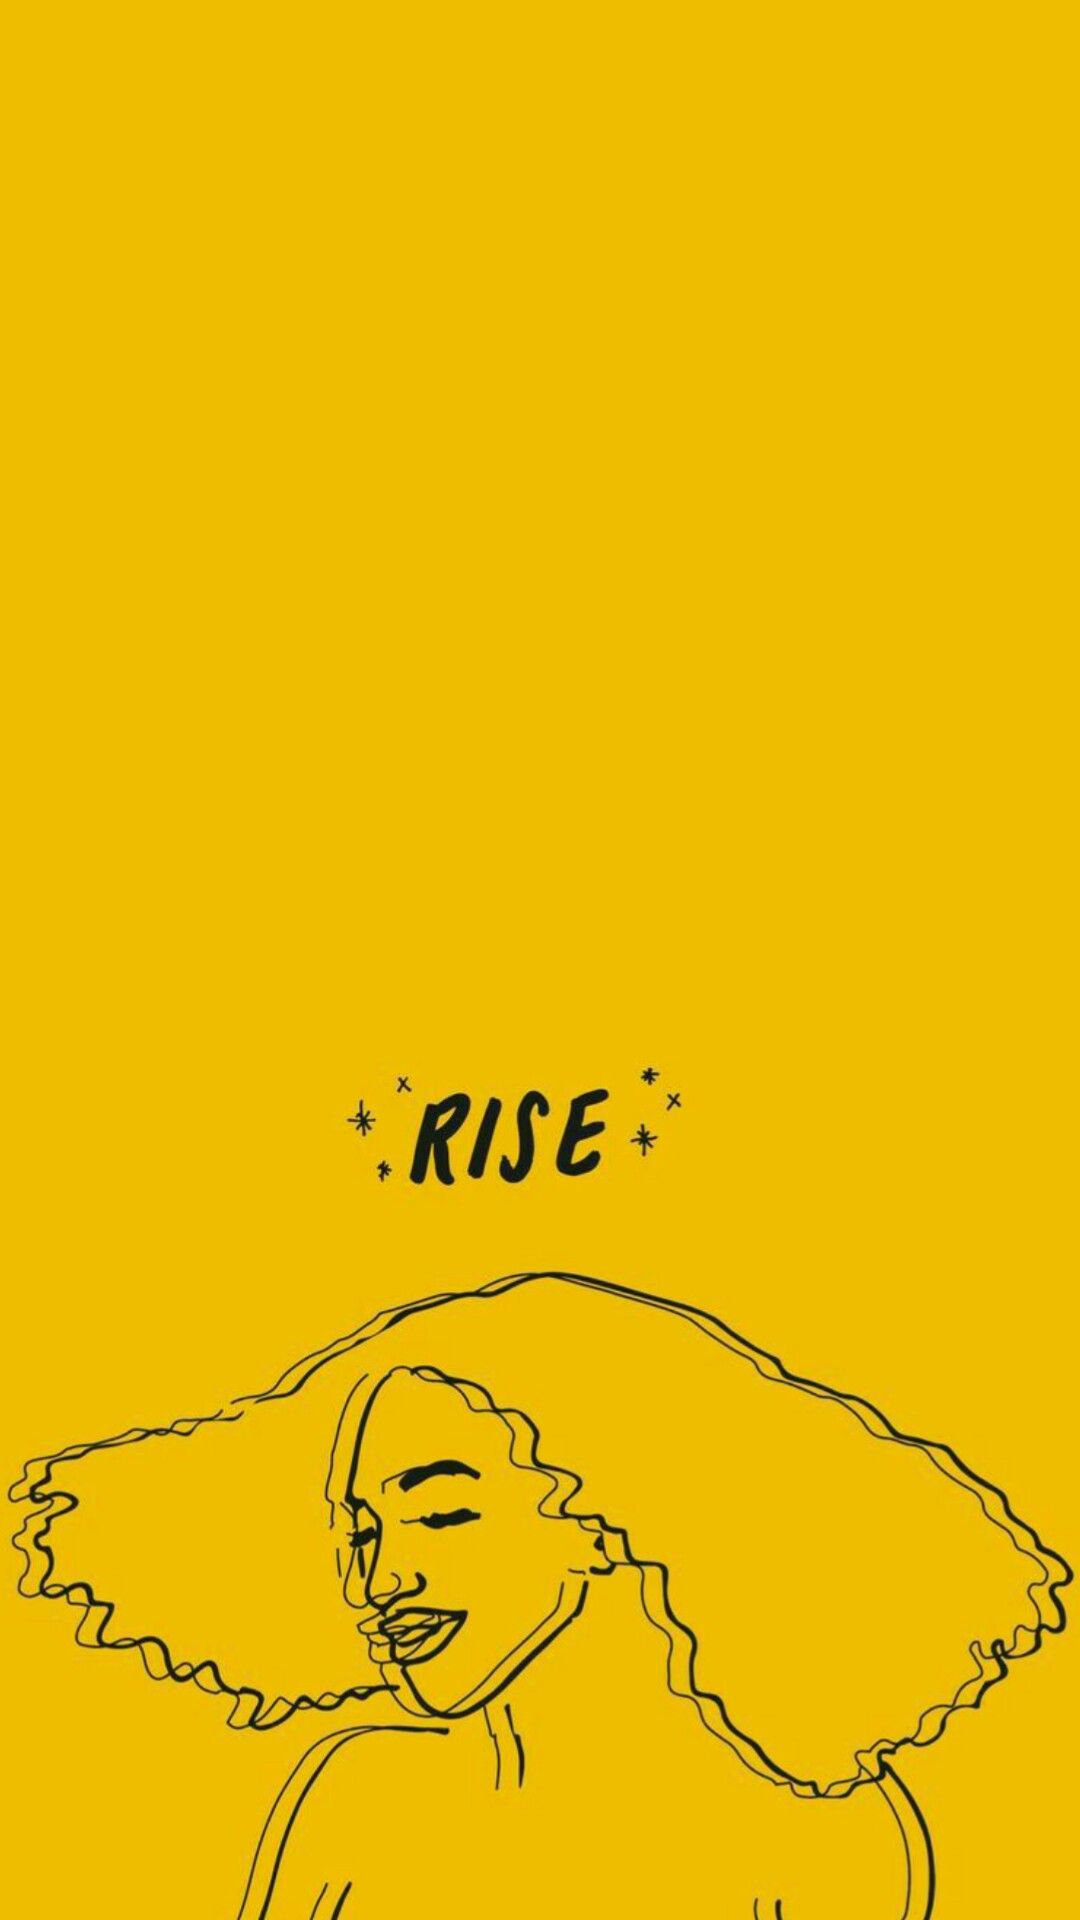 Pin By Mauly Montilla On Extra Yellow Wallpaper Positive Quotes Pastel Aesthetic